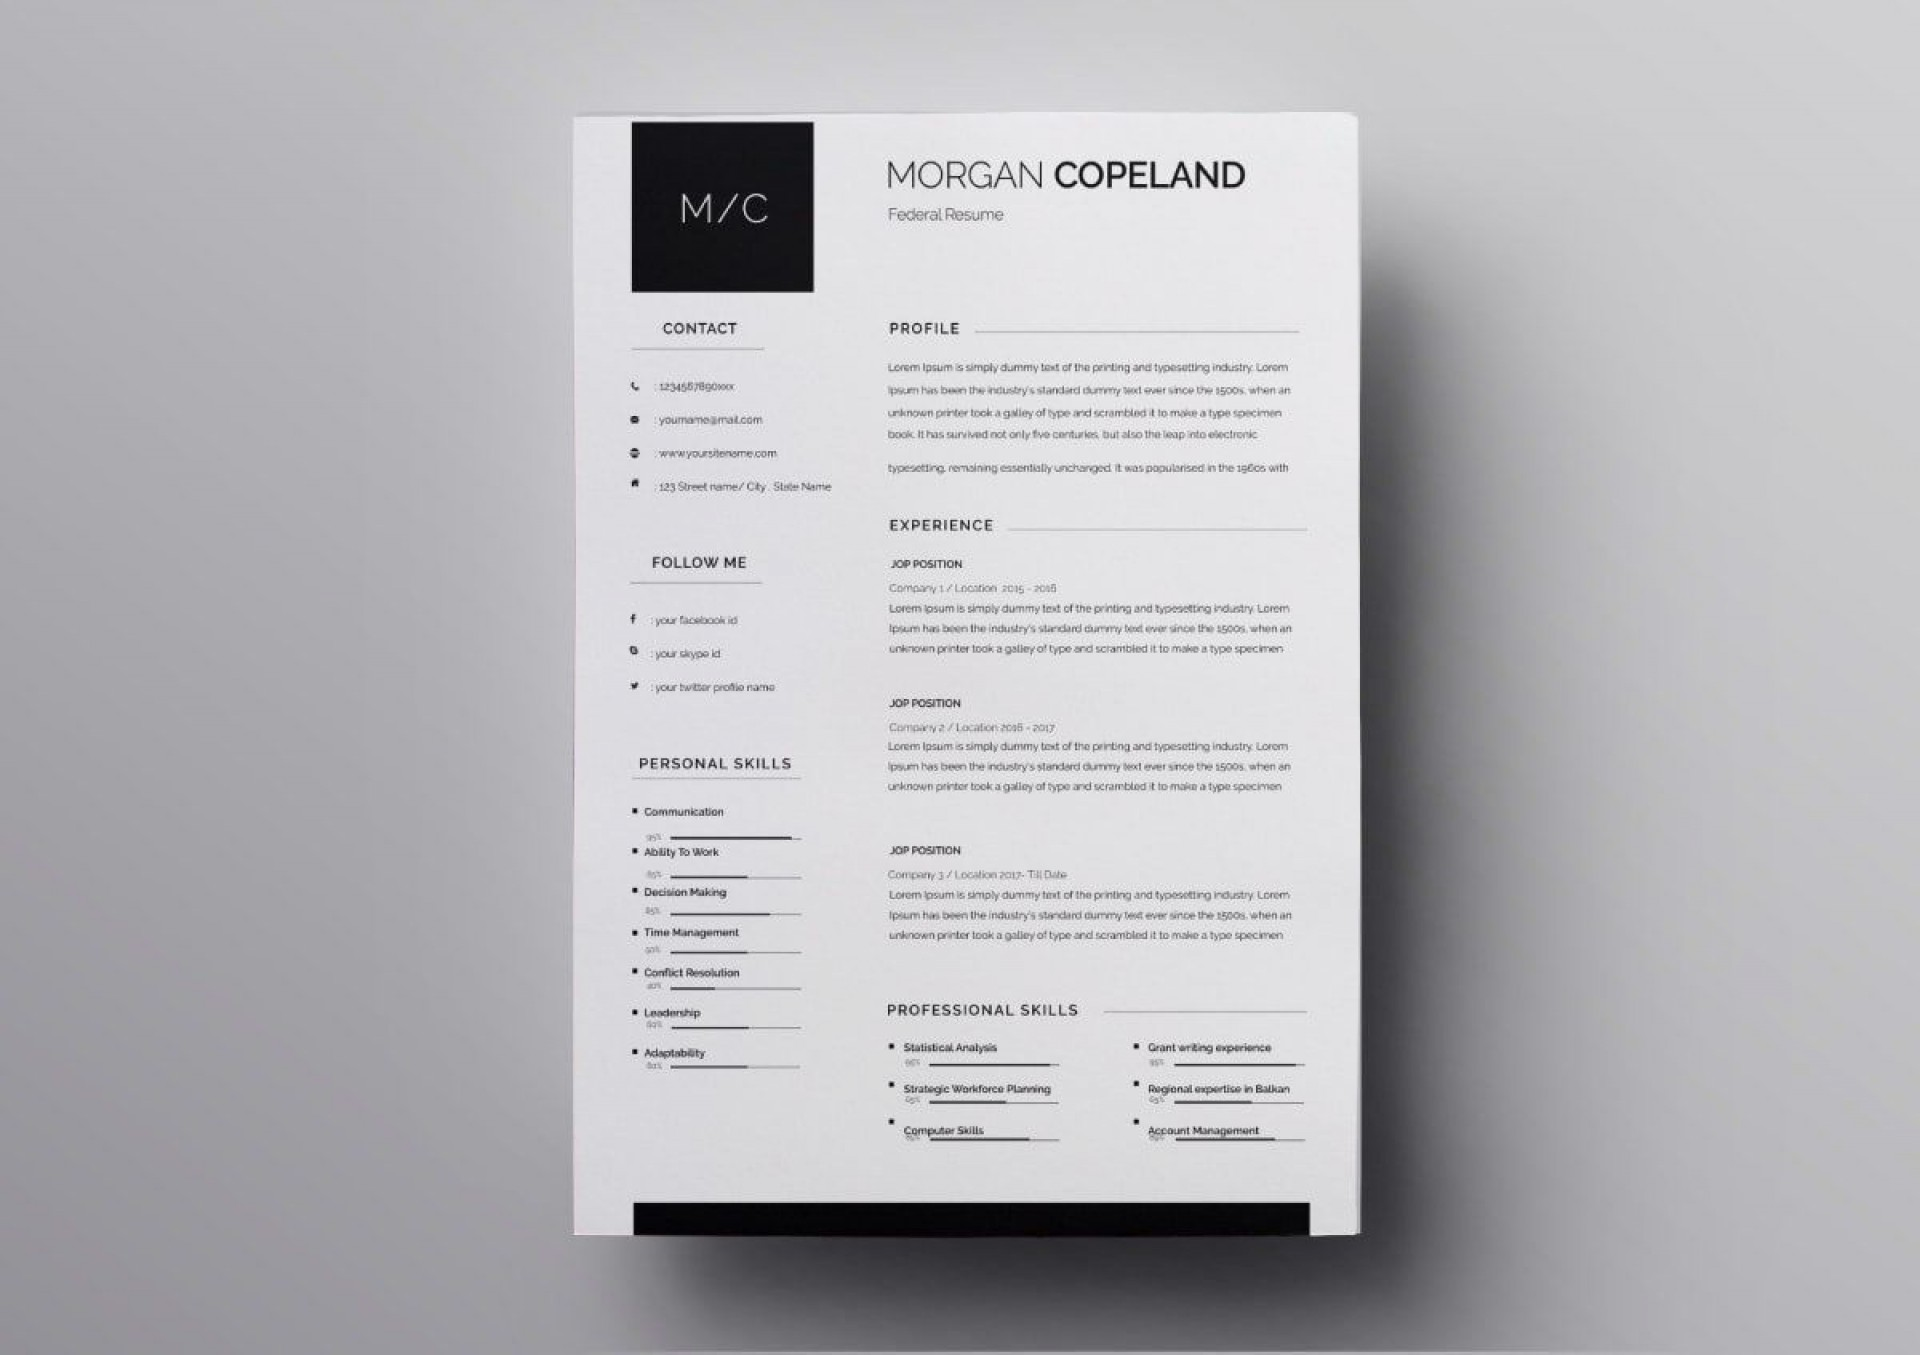 010 Wonderful Download Free Resume Template For Mac Page High Resolution  Pages1920